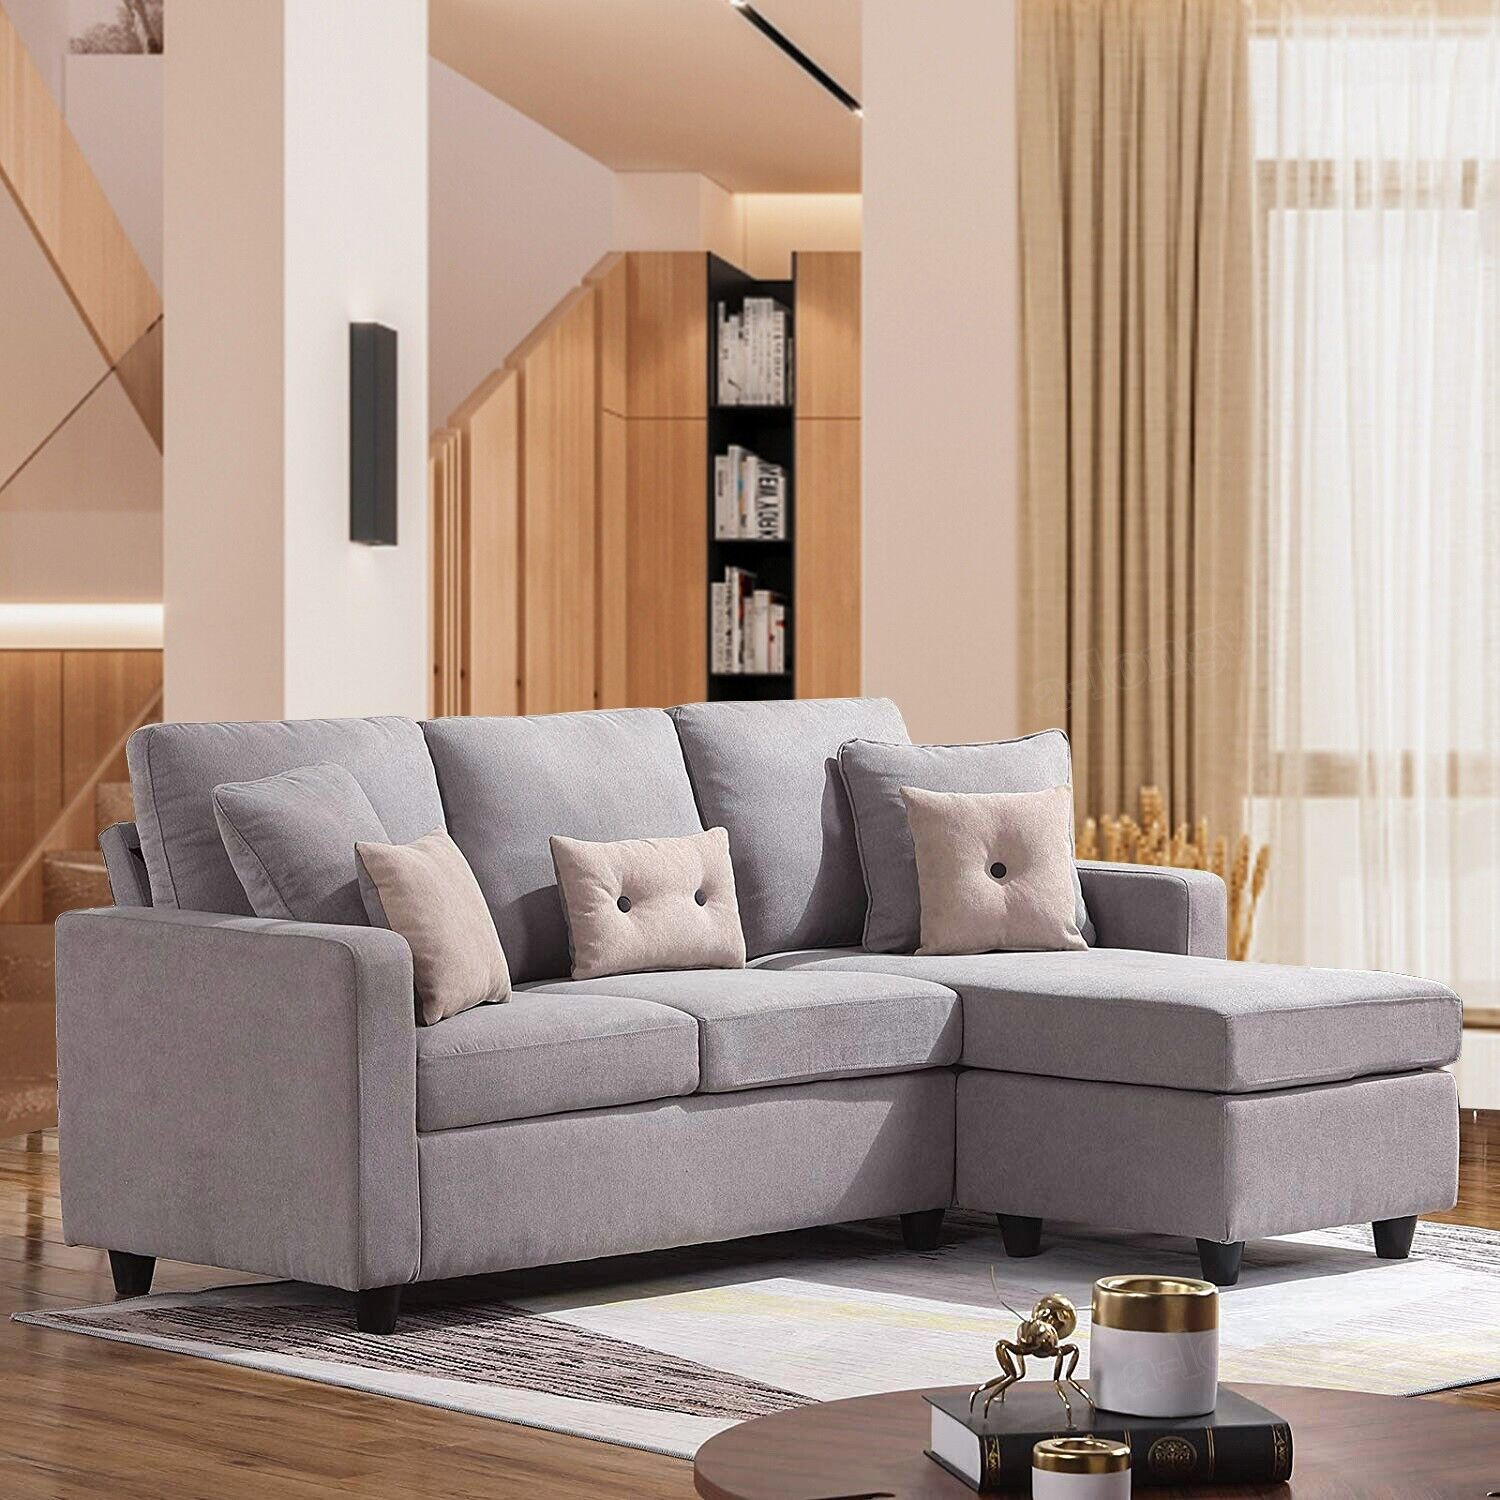 Swell Linen Fabric Sectional Sofa L Shaped Couch W Reversible Chaise For Small Space Ibusinesslaw Wood Chair Design Ideas Ibusinesslaworg